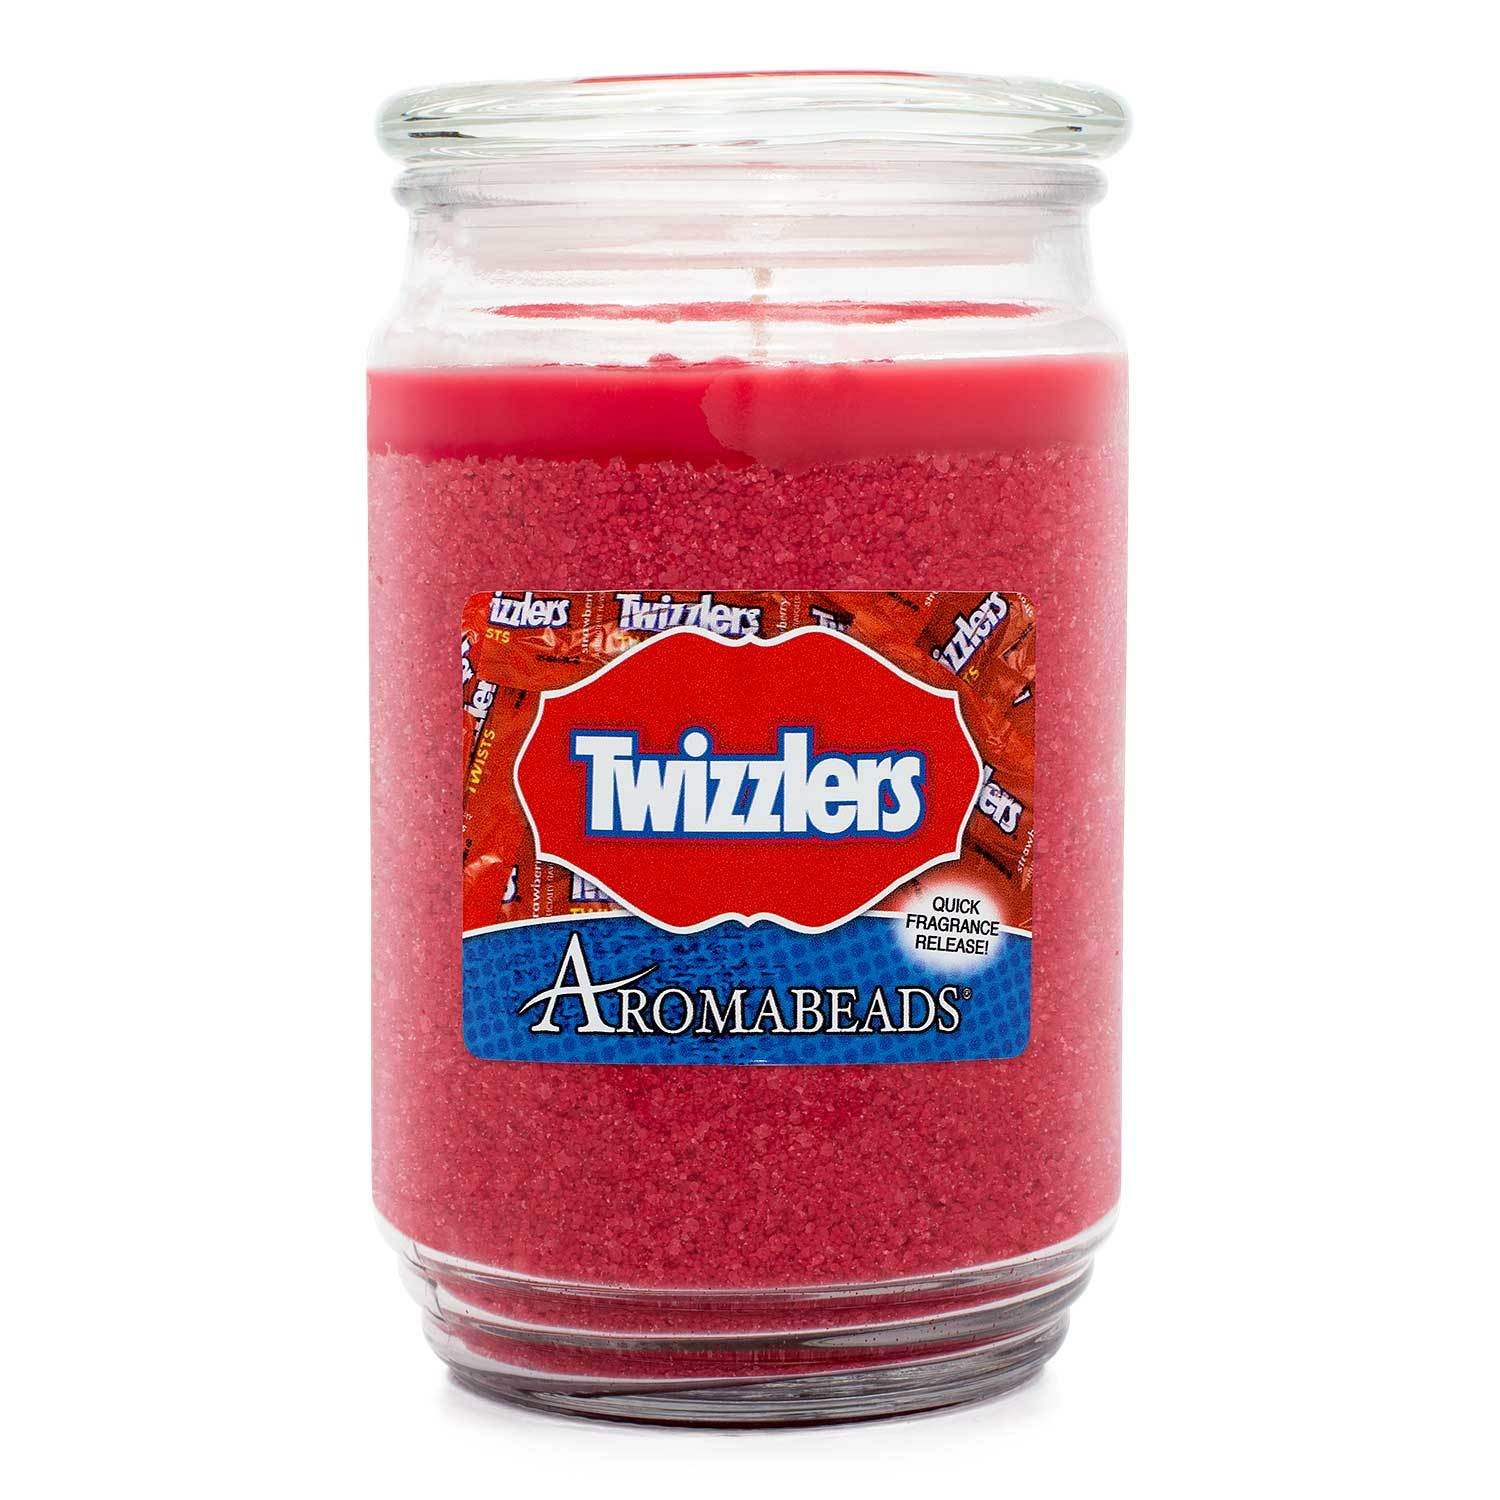 Aromabeads HERSHEY'S Twizzlers Scented Candle Aromabeads Candlemart.com $ 9.99